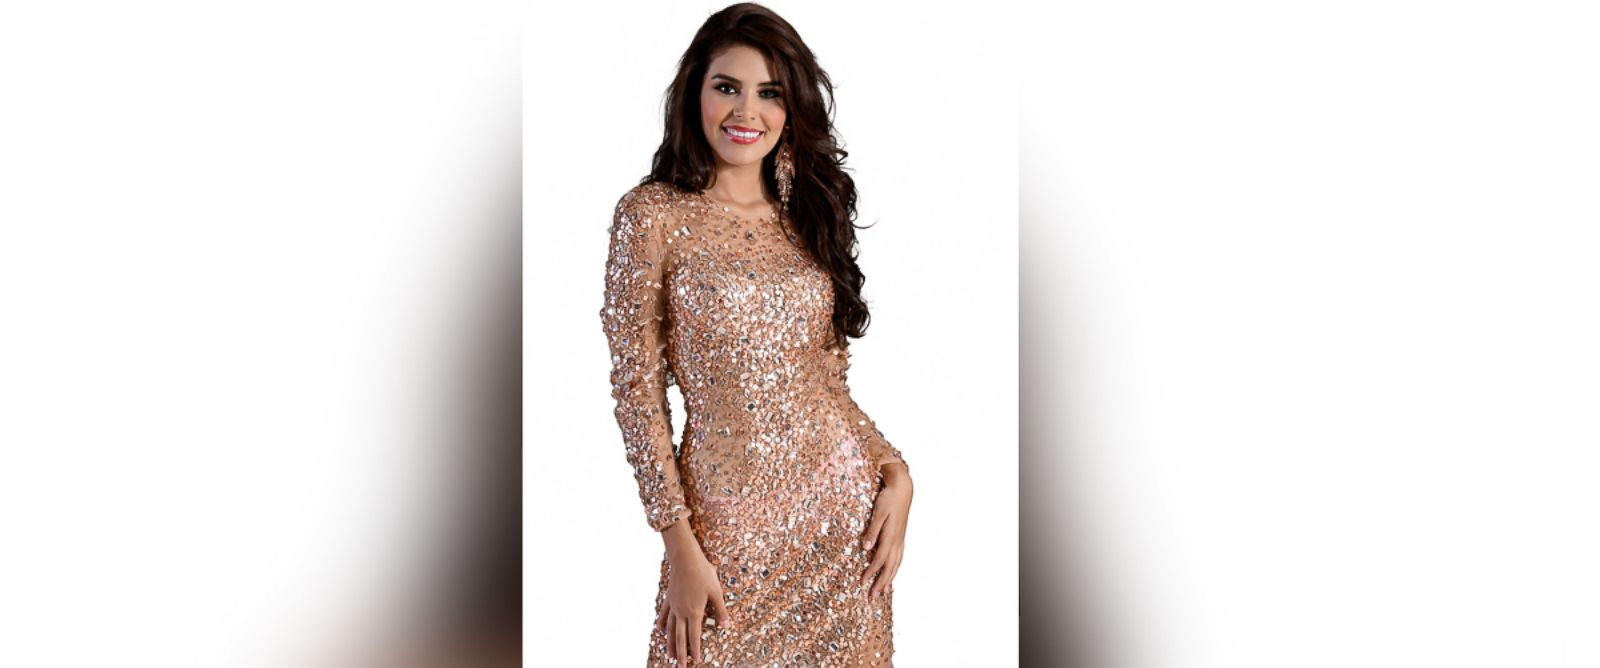 PHOTO: Maria Jose Alvarado was crowned Miss Honduras in 2014, and was shot and killed just seven months later.